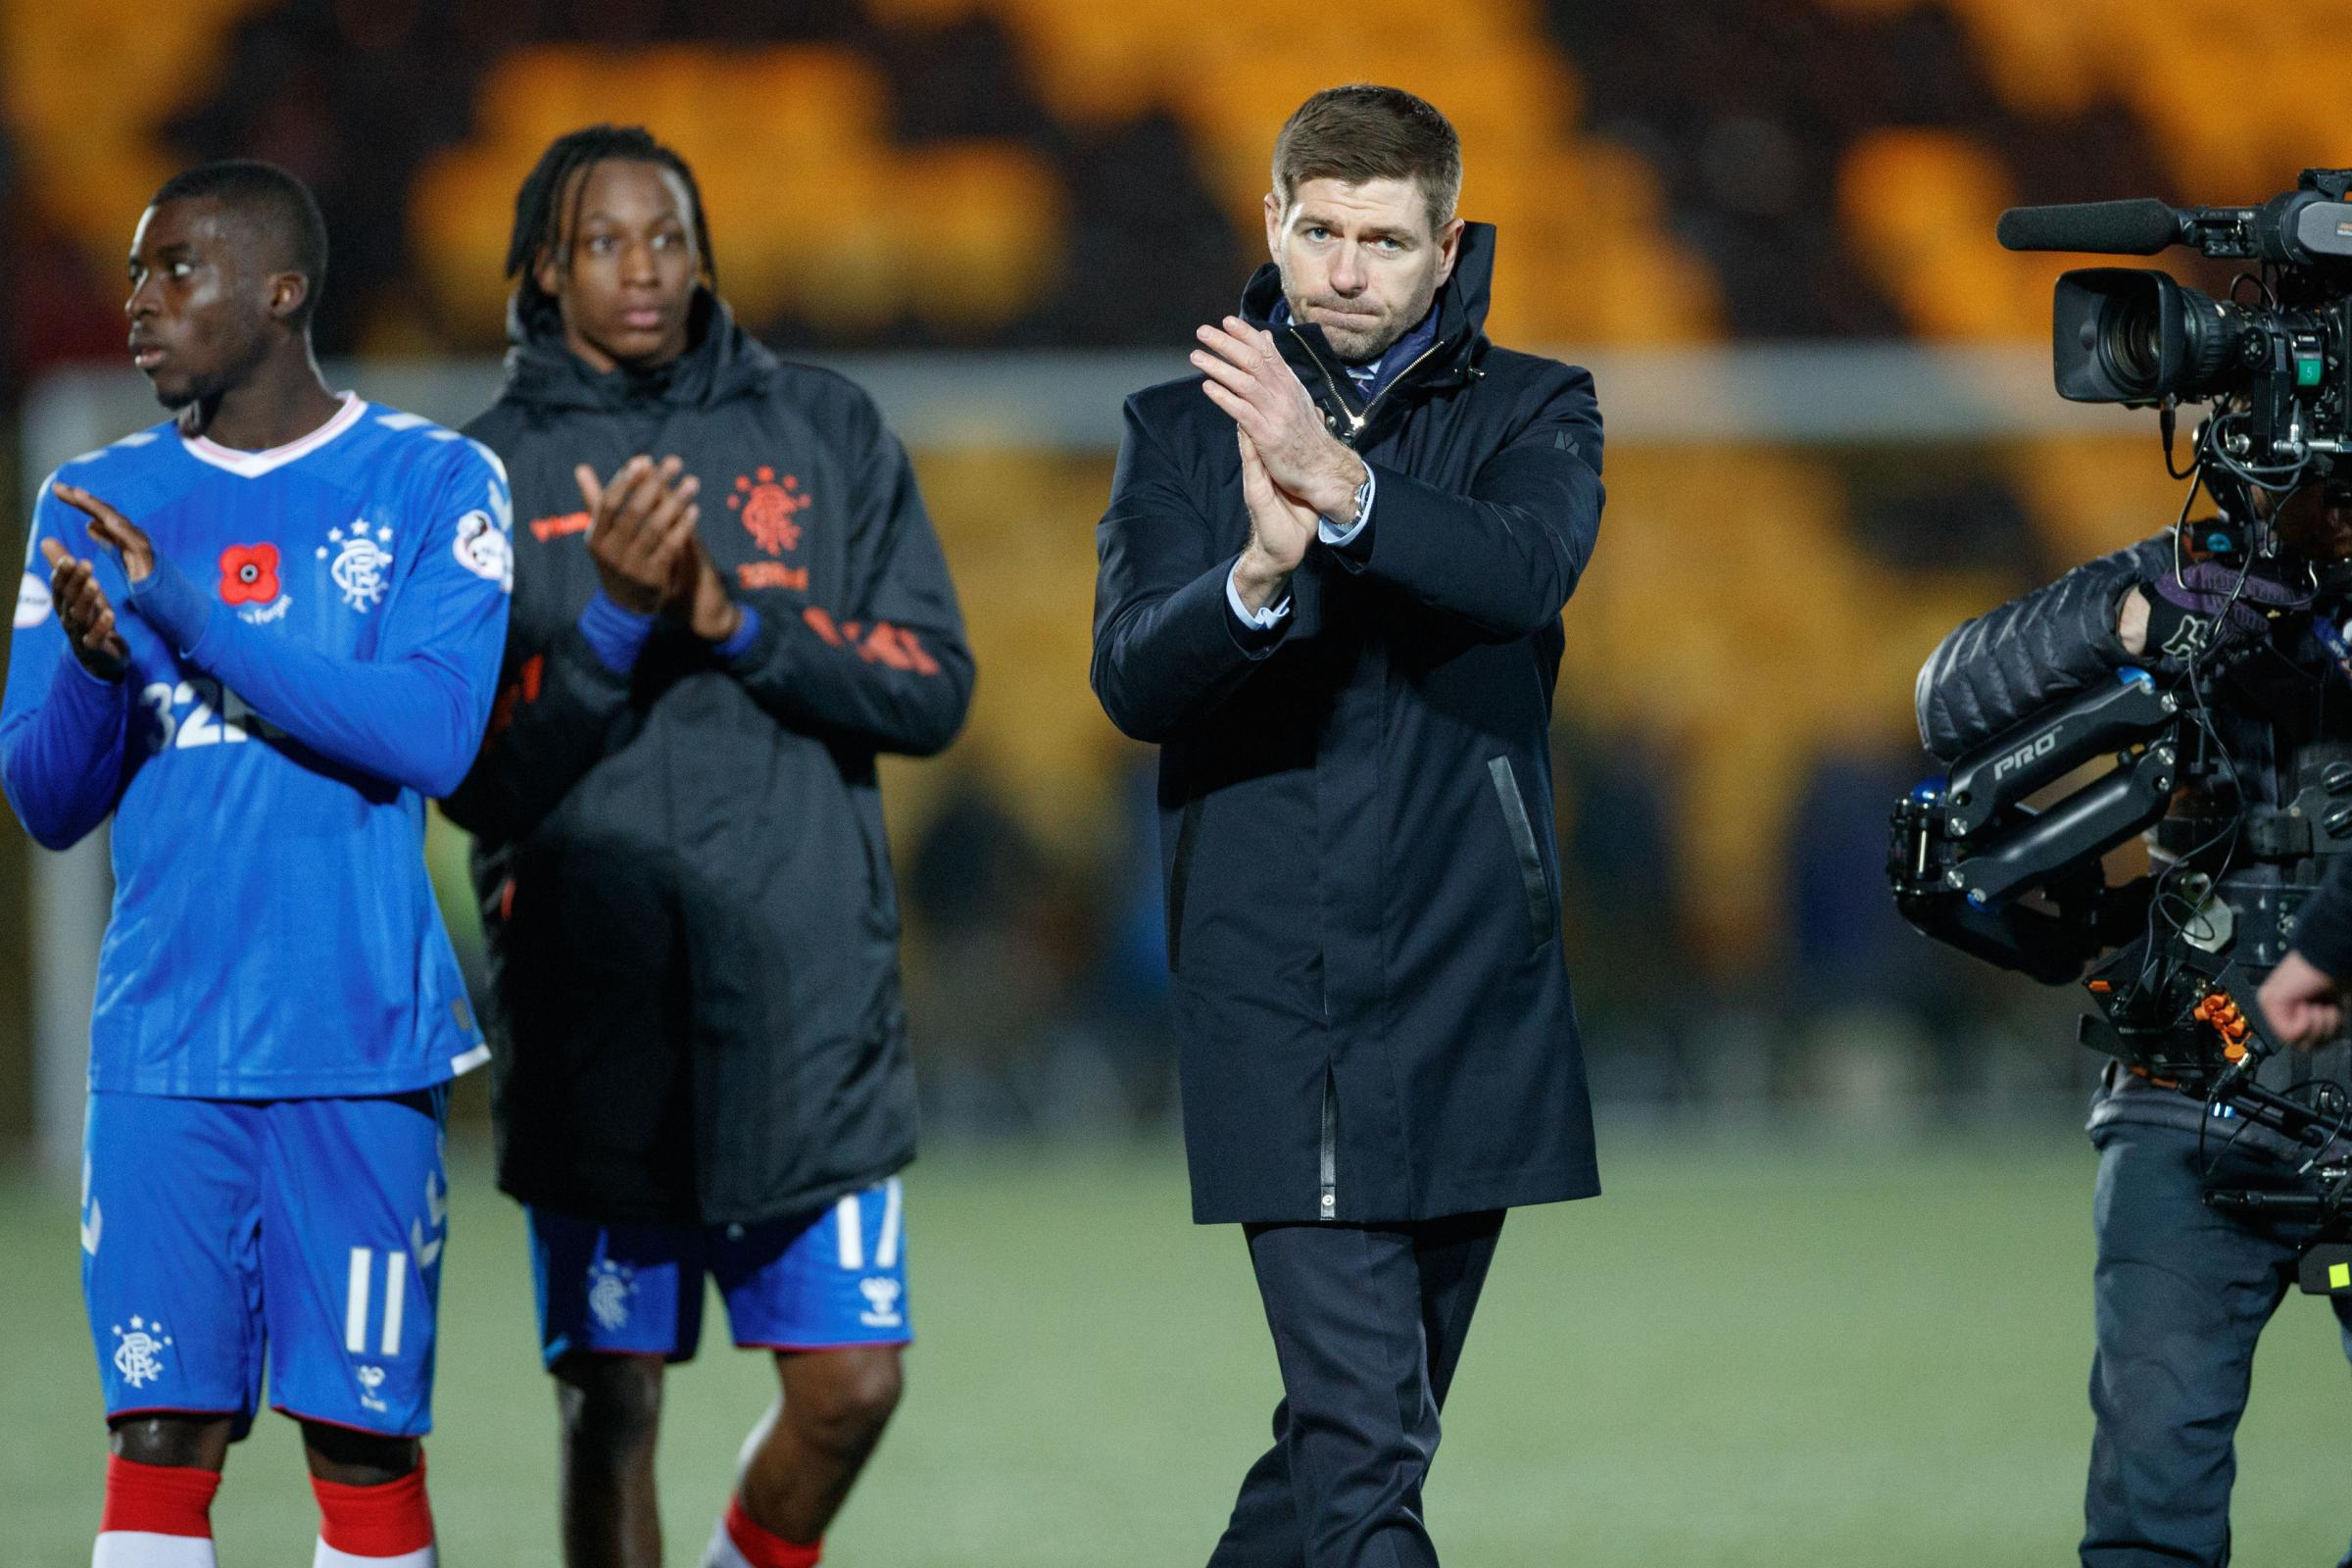 Steven Gerrard delighted with 'outstanding' Rangers display in crucial win over Livingston